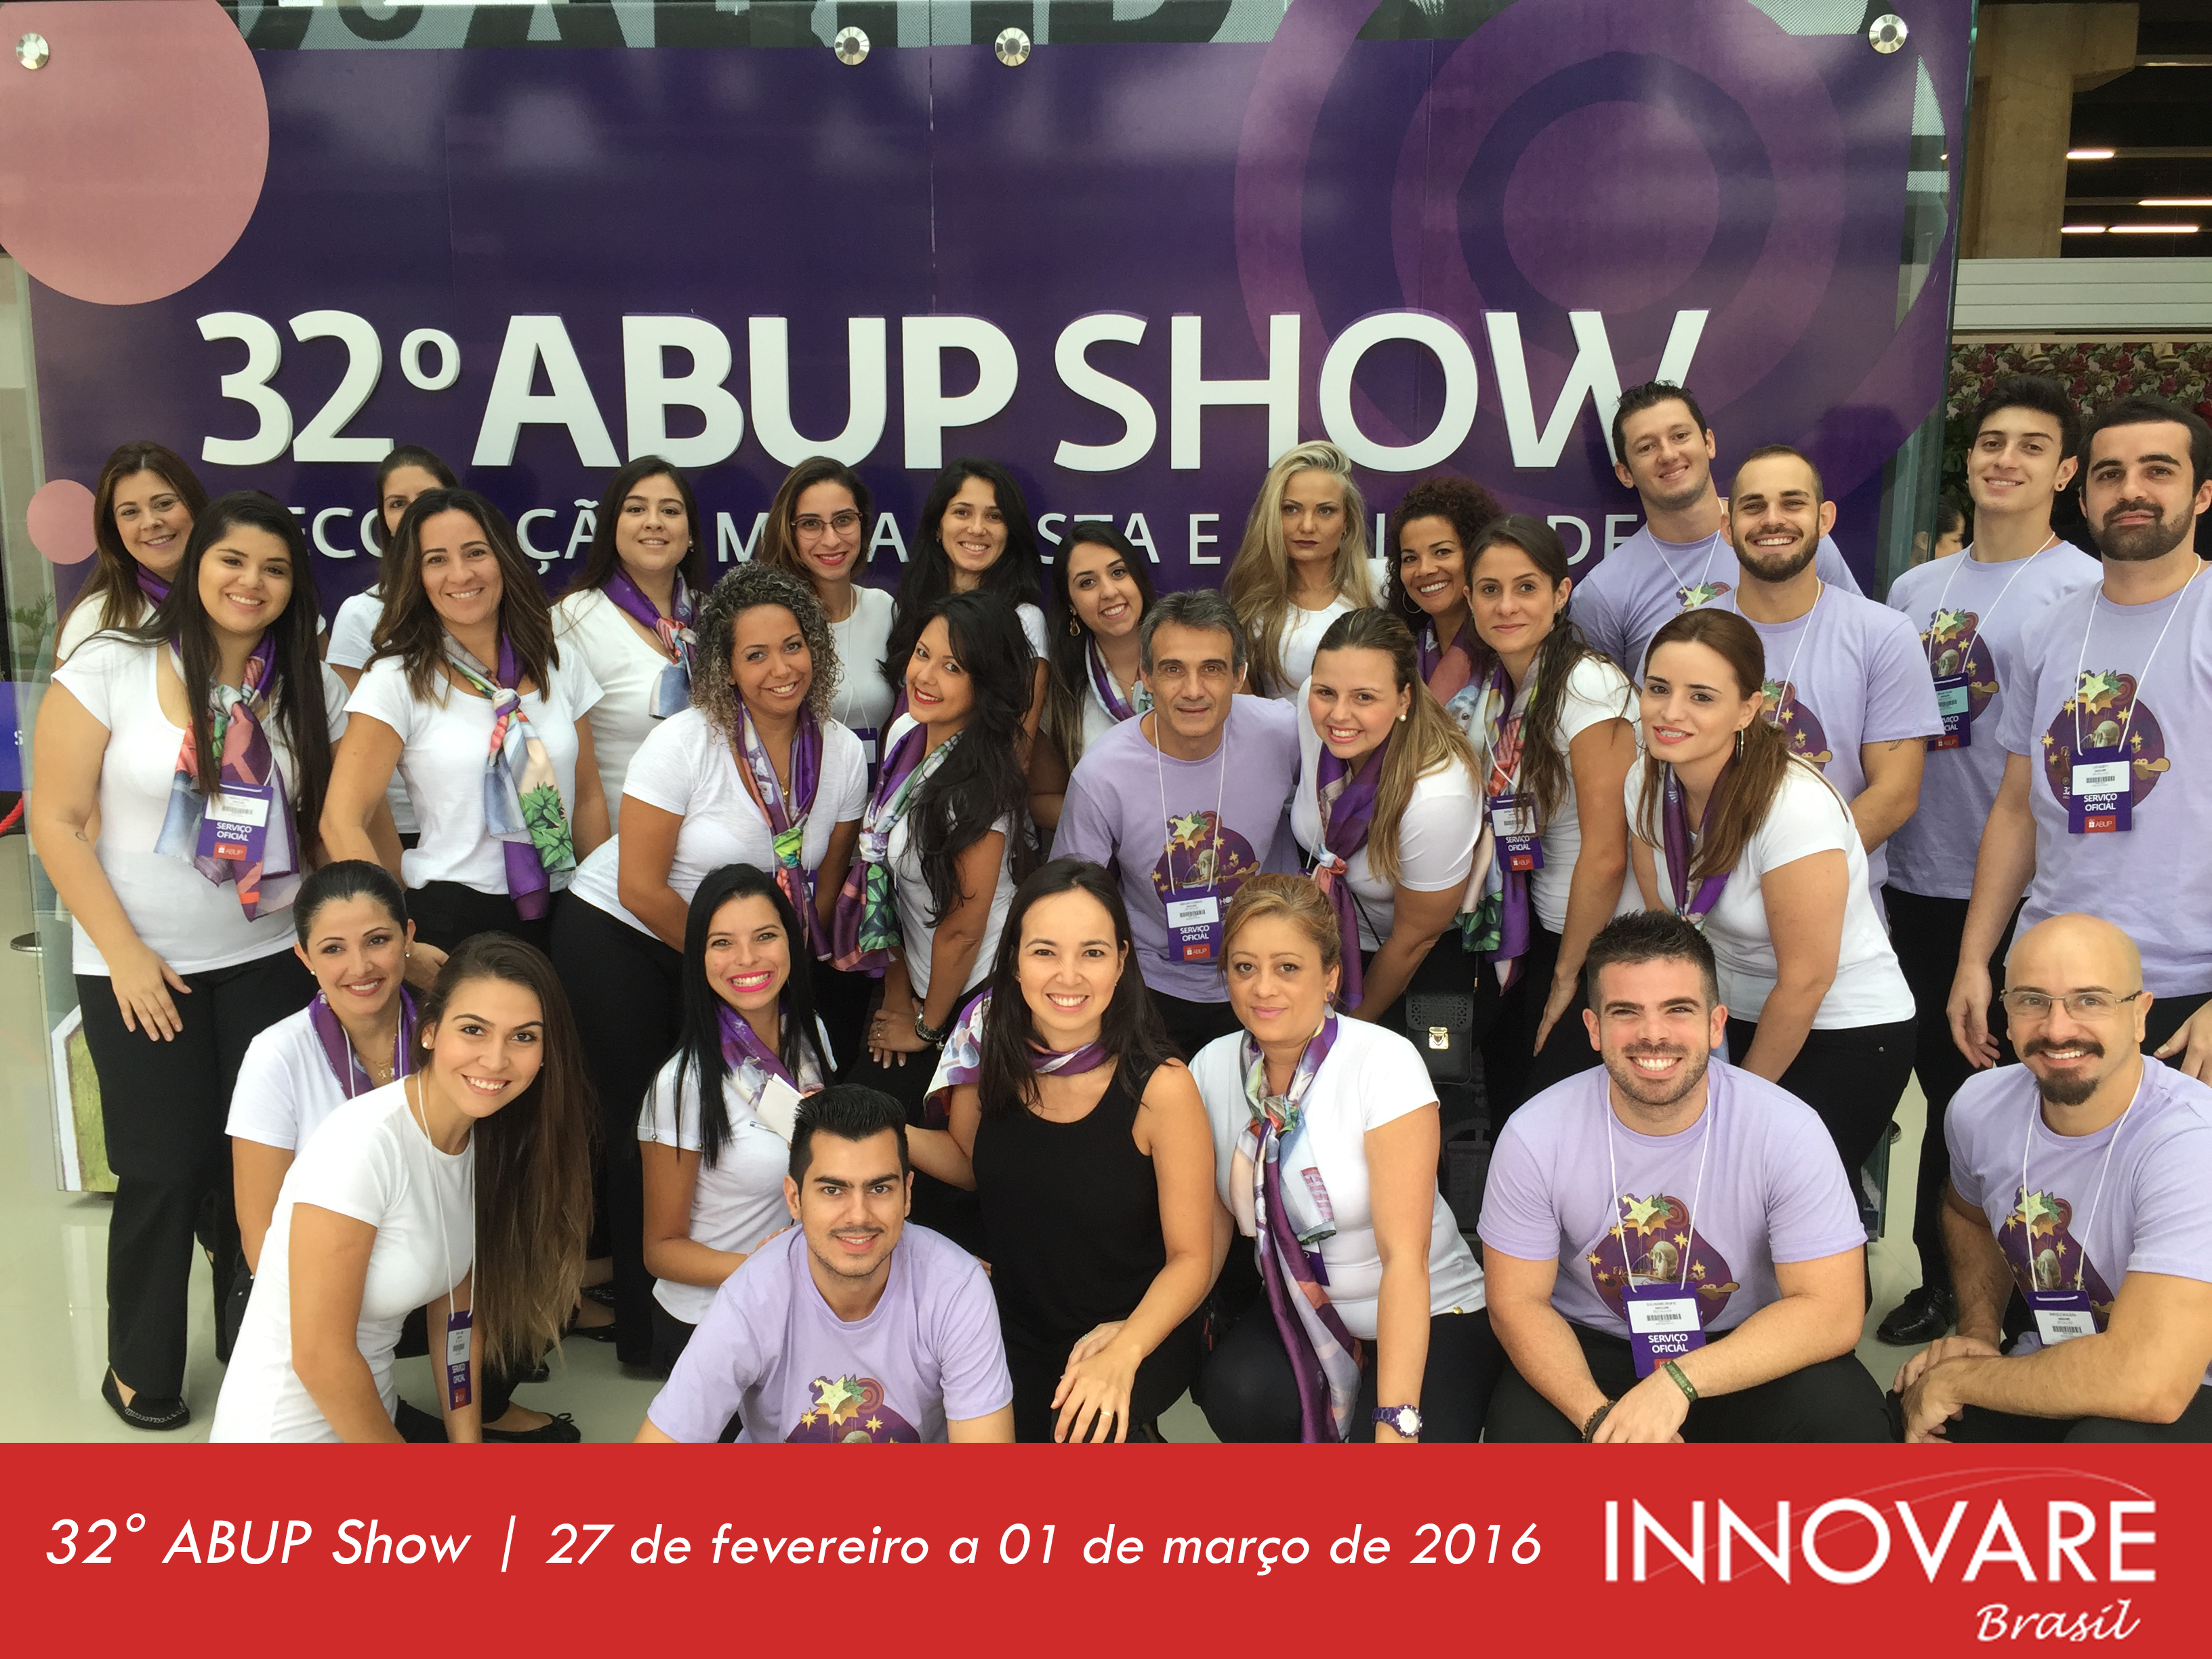 32° ABUP Show